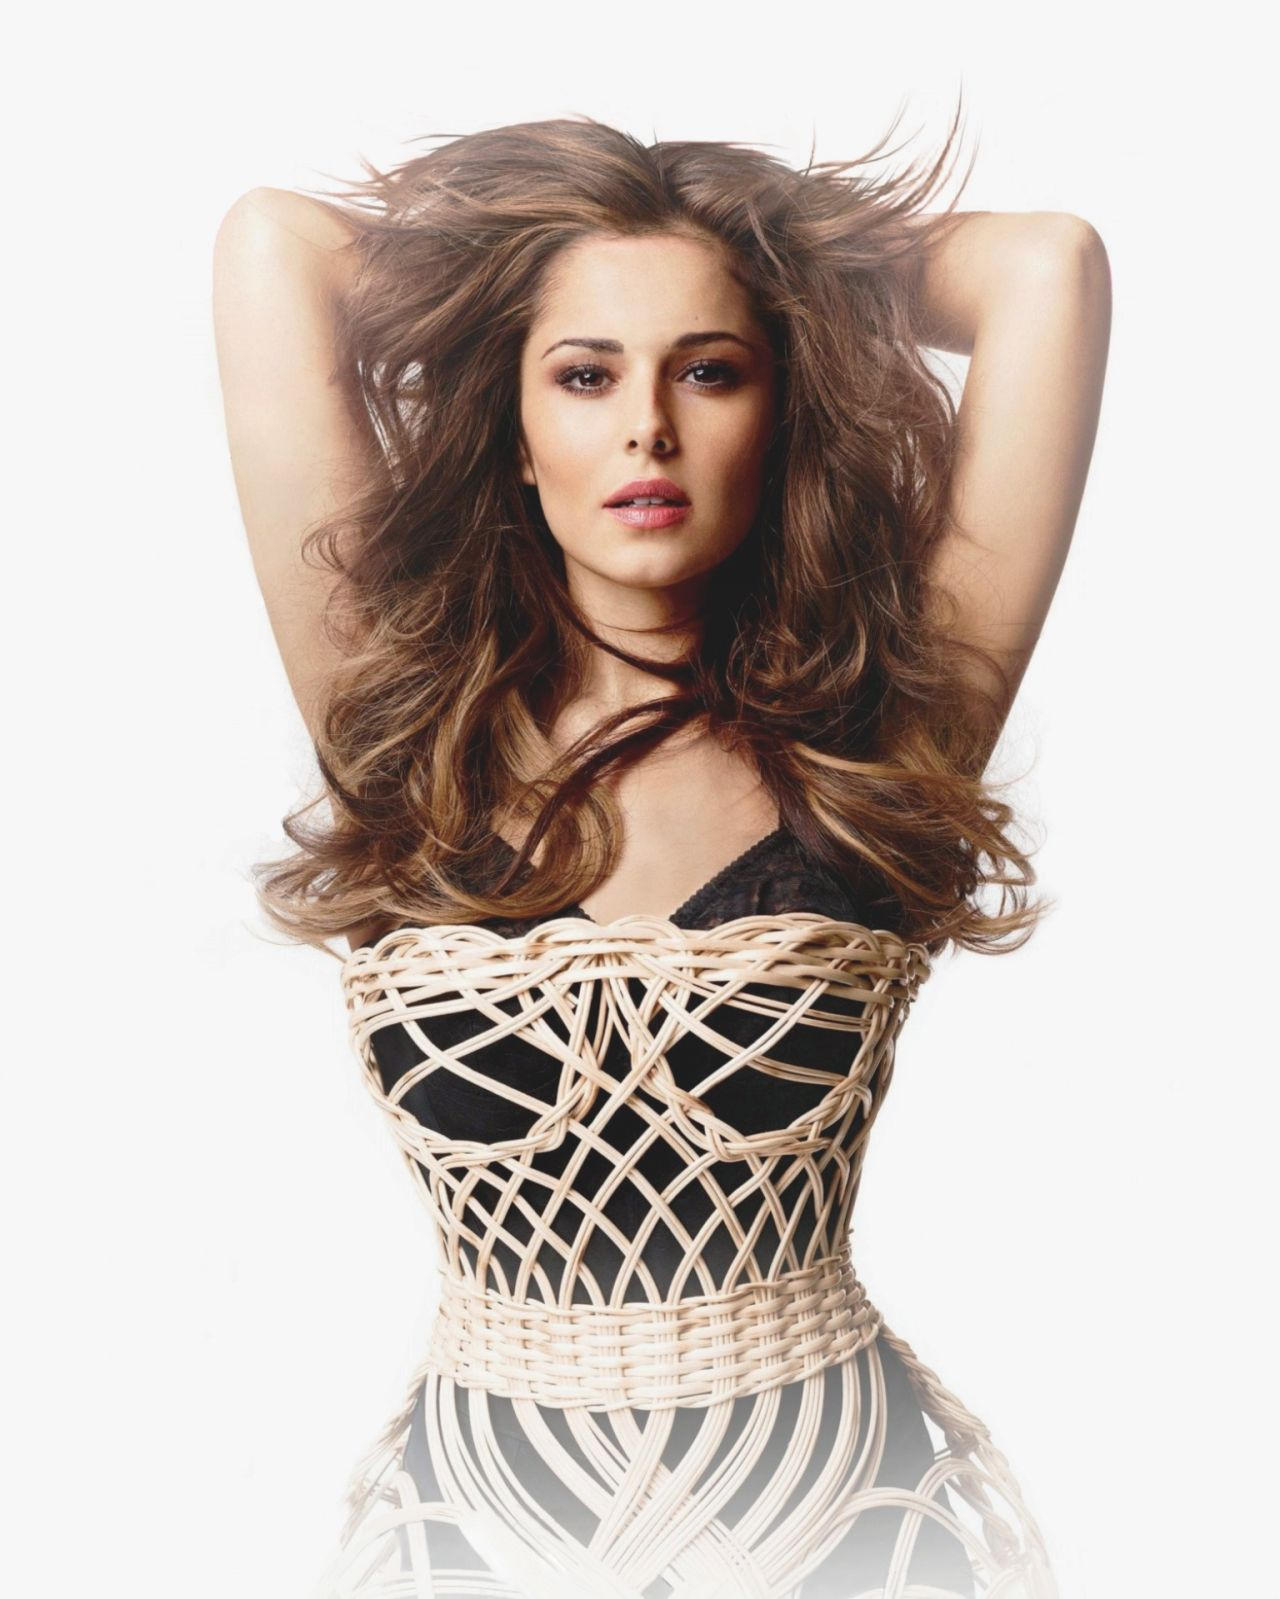 Cheryl Cole Photoshoot (David Vasiljevic)